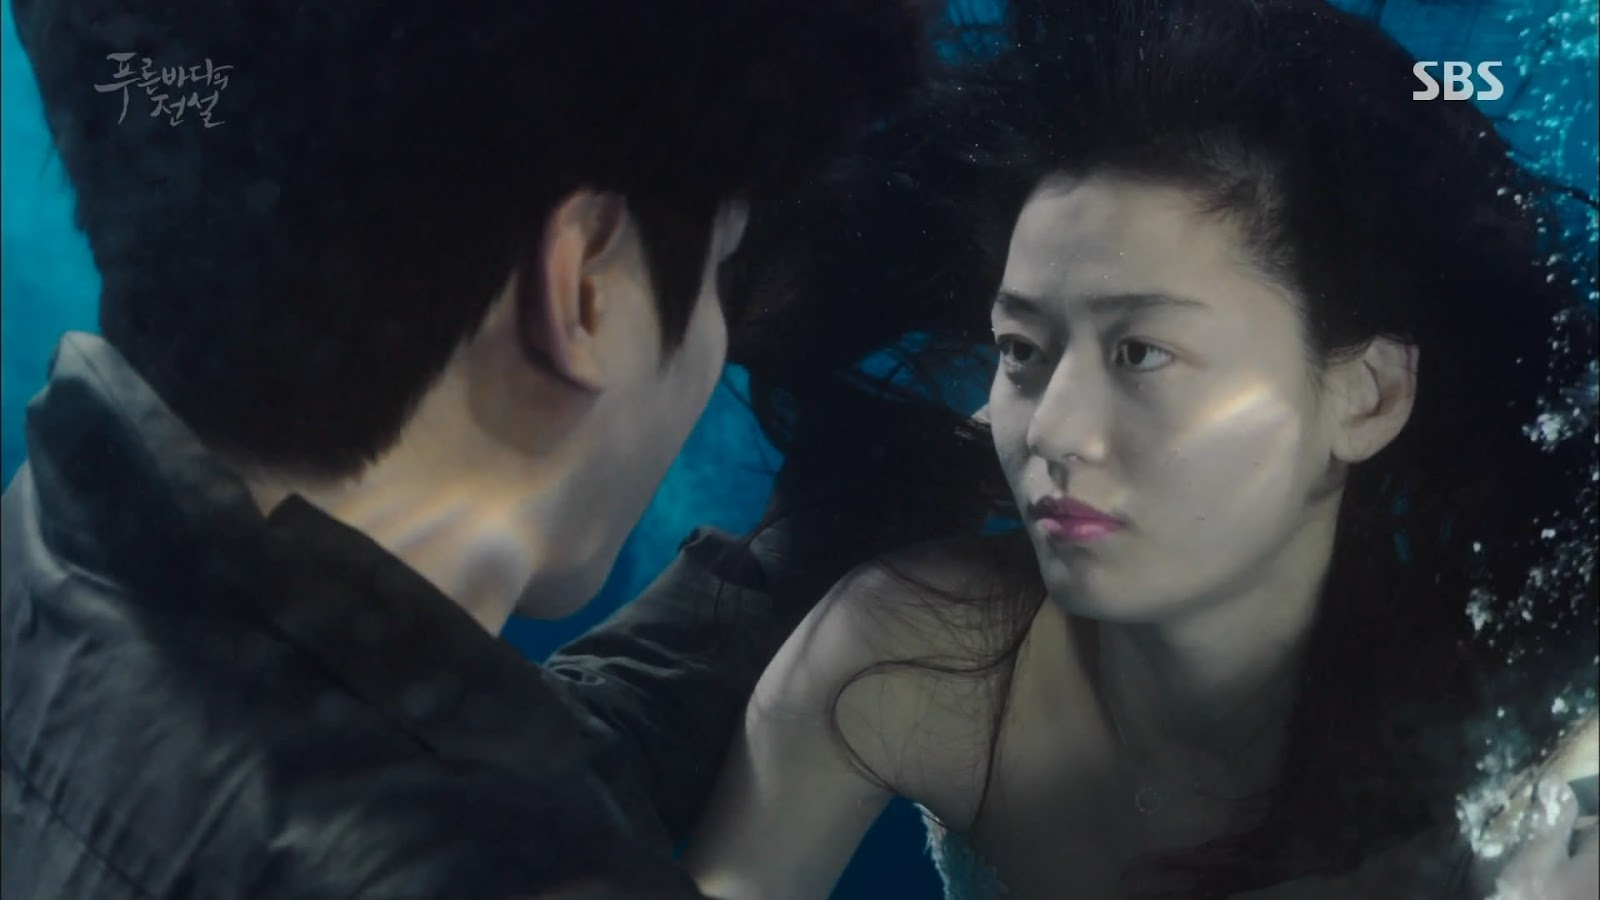 Screenshot Joon Jea And Cheong Yi Kissing The Legend Of The Blu Sea (2016)  1080p Episode 02 - www.uchiha-uzuma.com